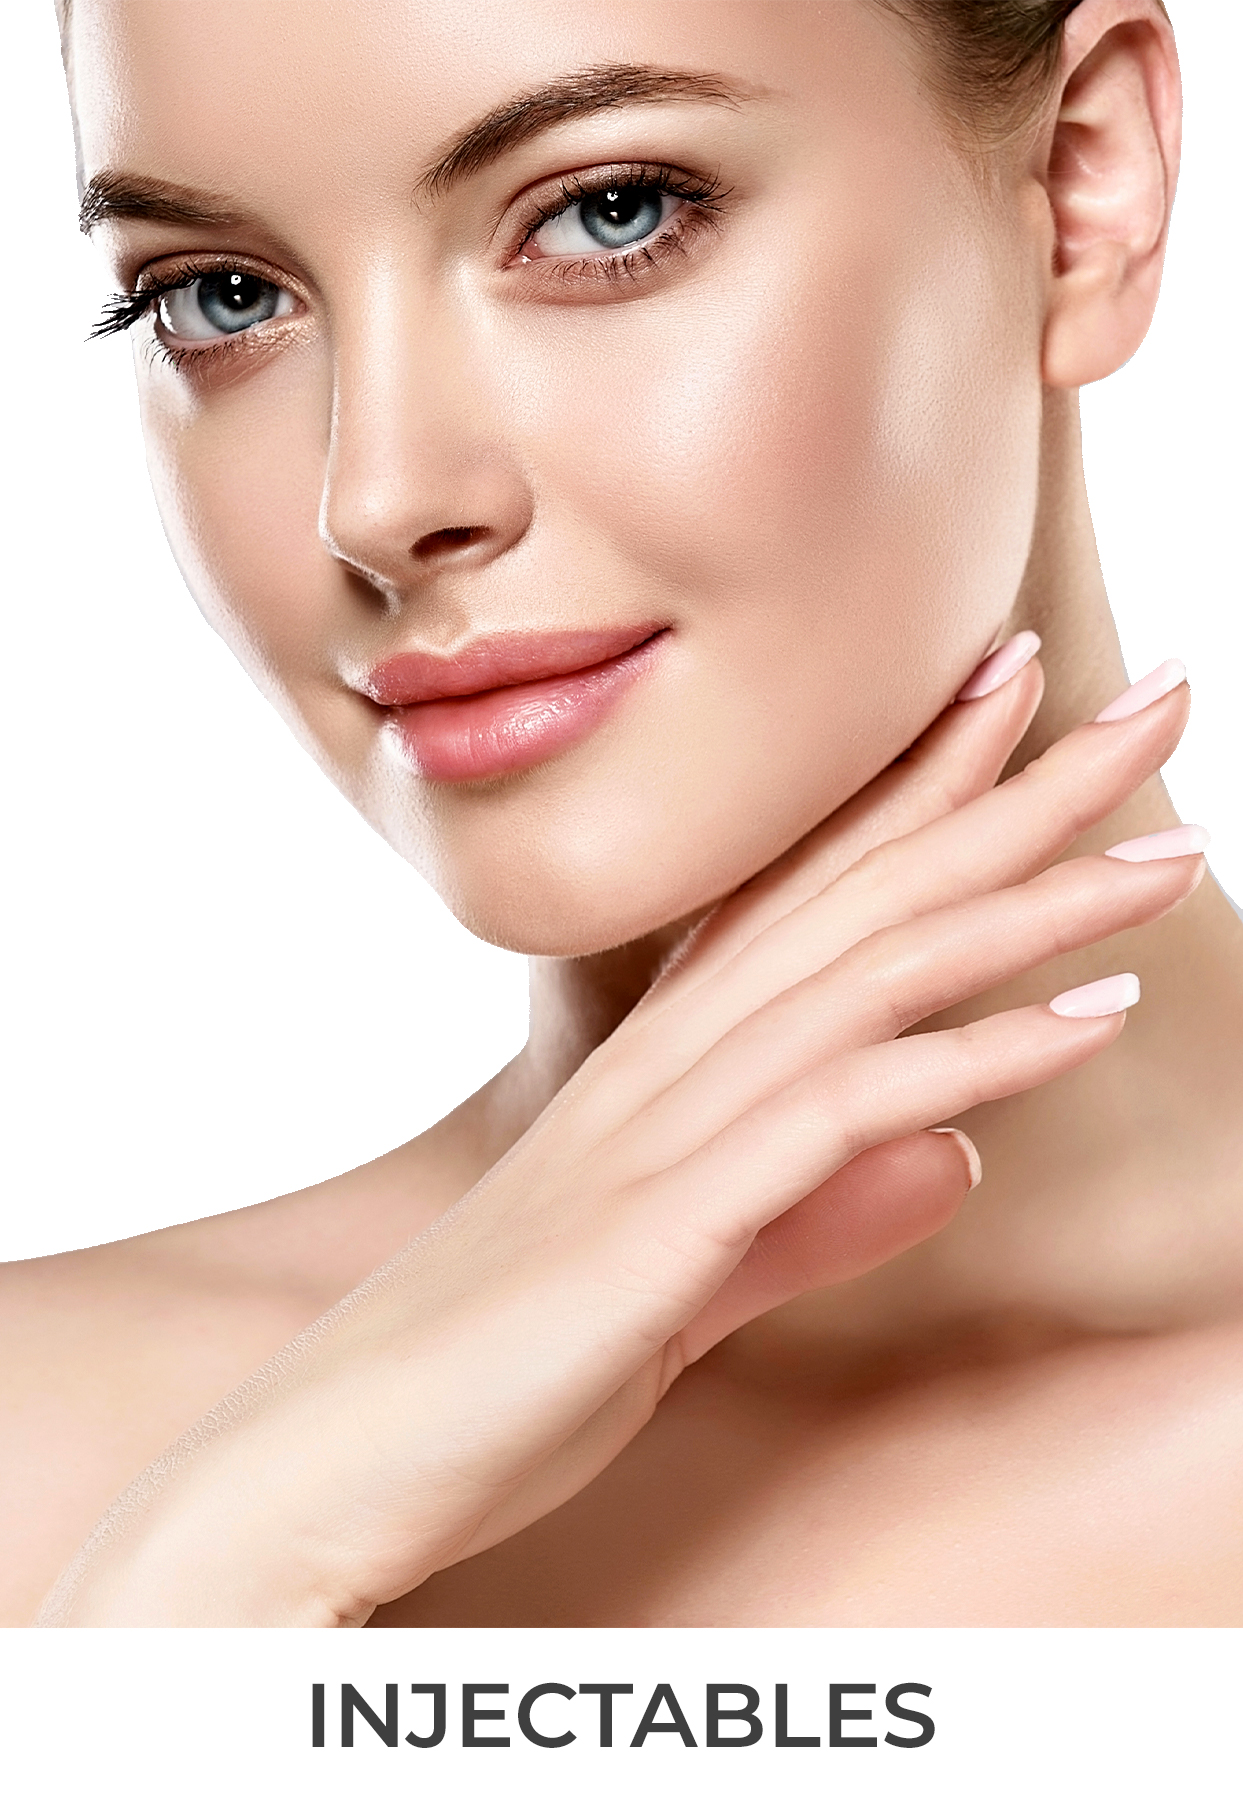 Aesthetic Injectable Treatments Oklahoma